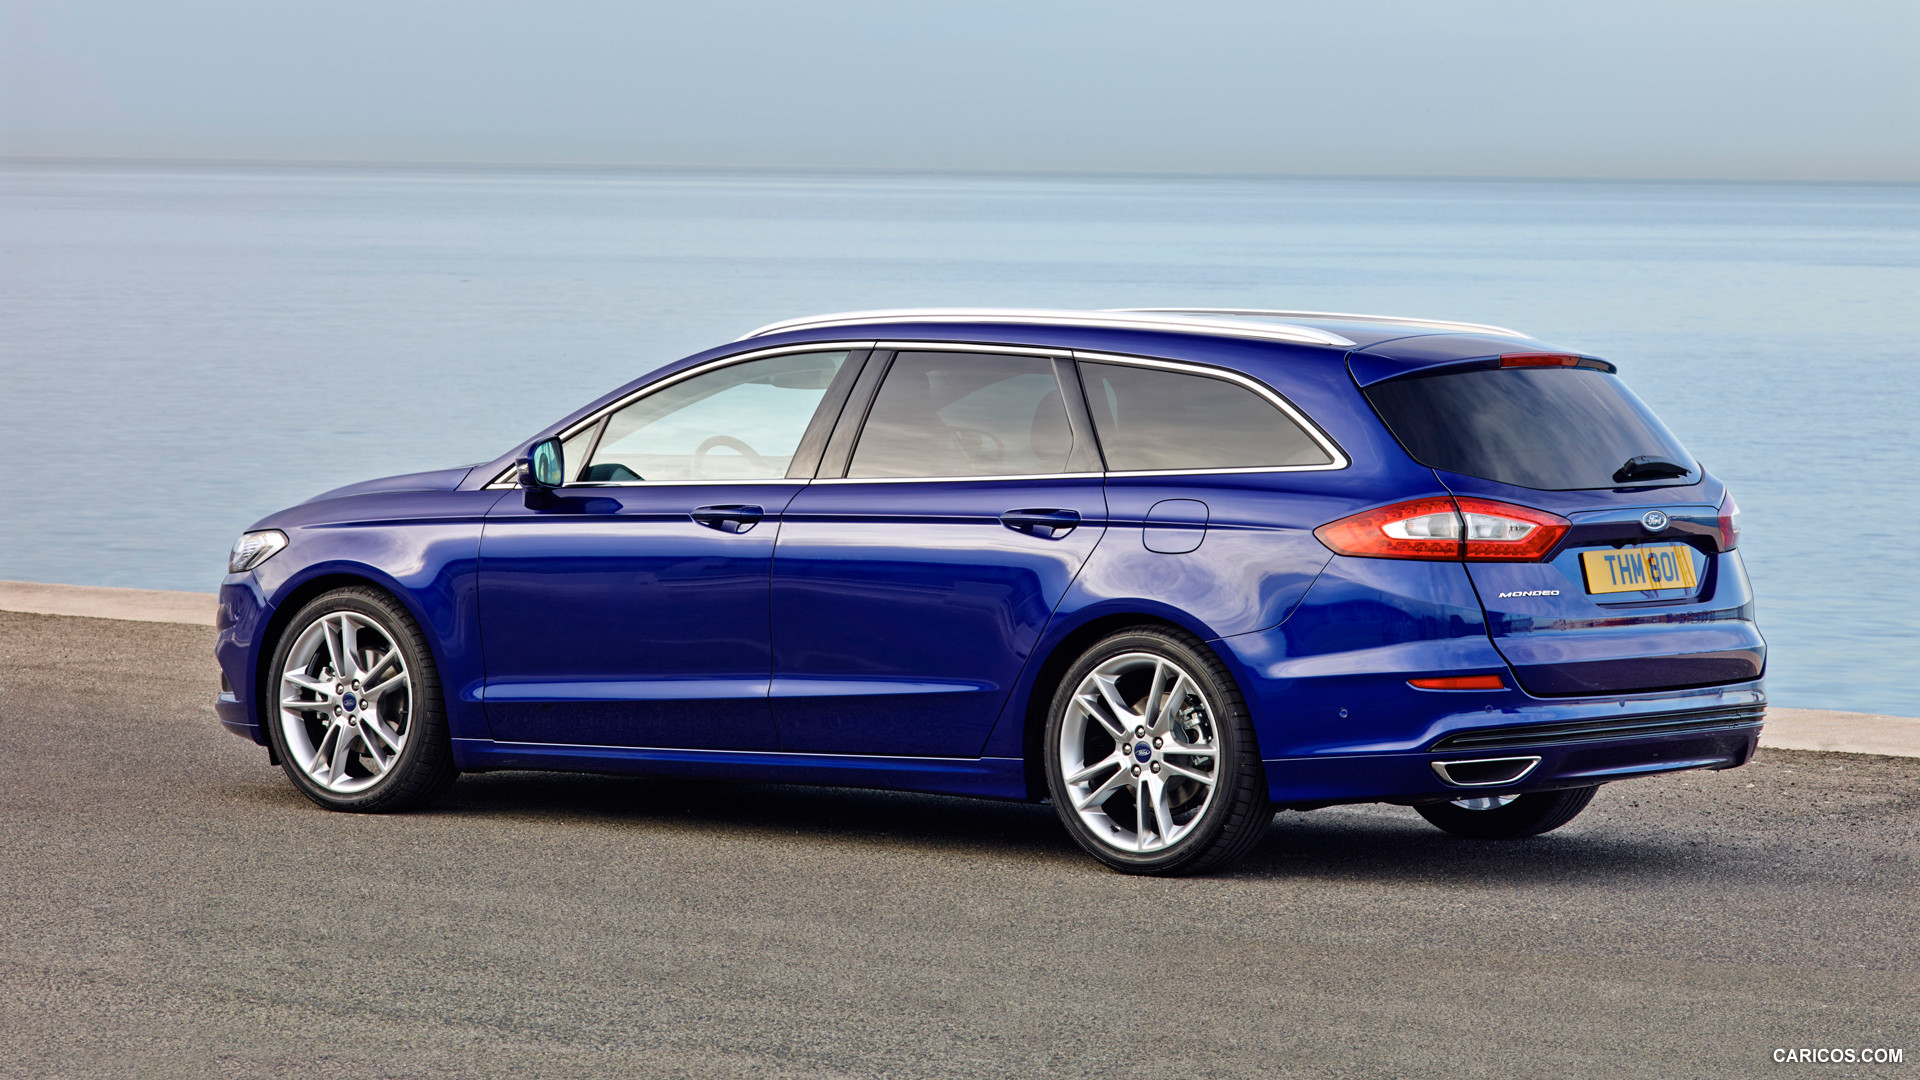 Ford Mondeo 2019 >> Ford Mondeo Wagon photos - PhotoGallery with 63 pics| CarsBase.com